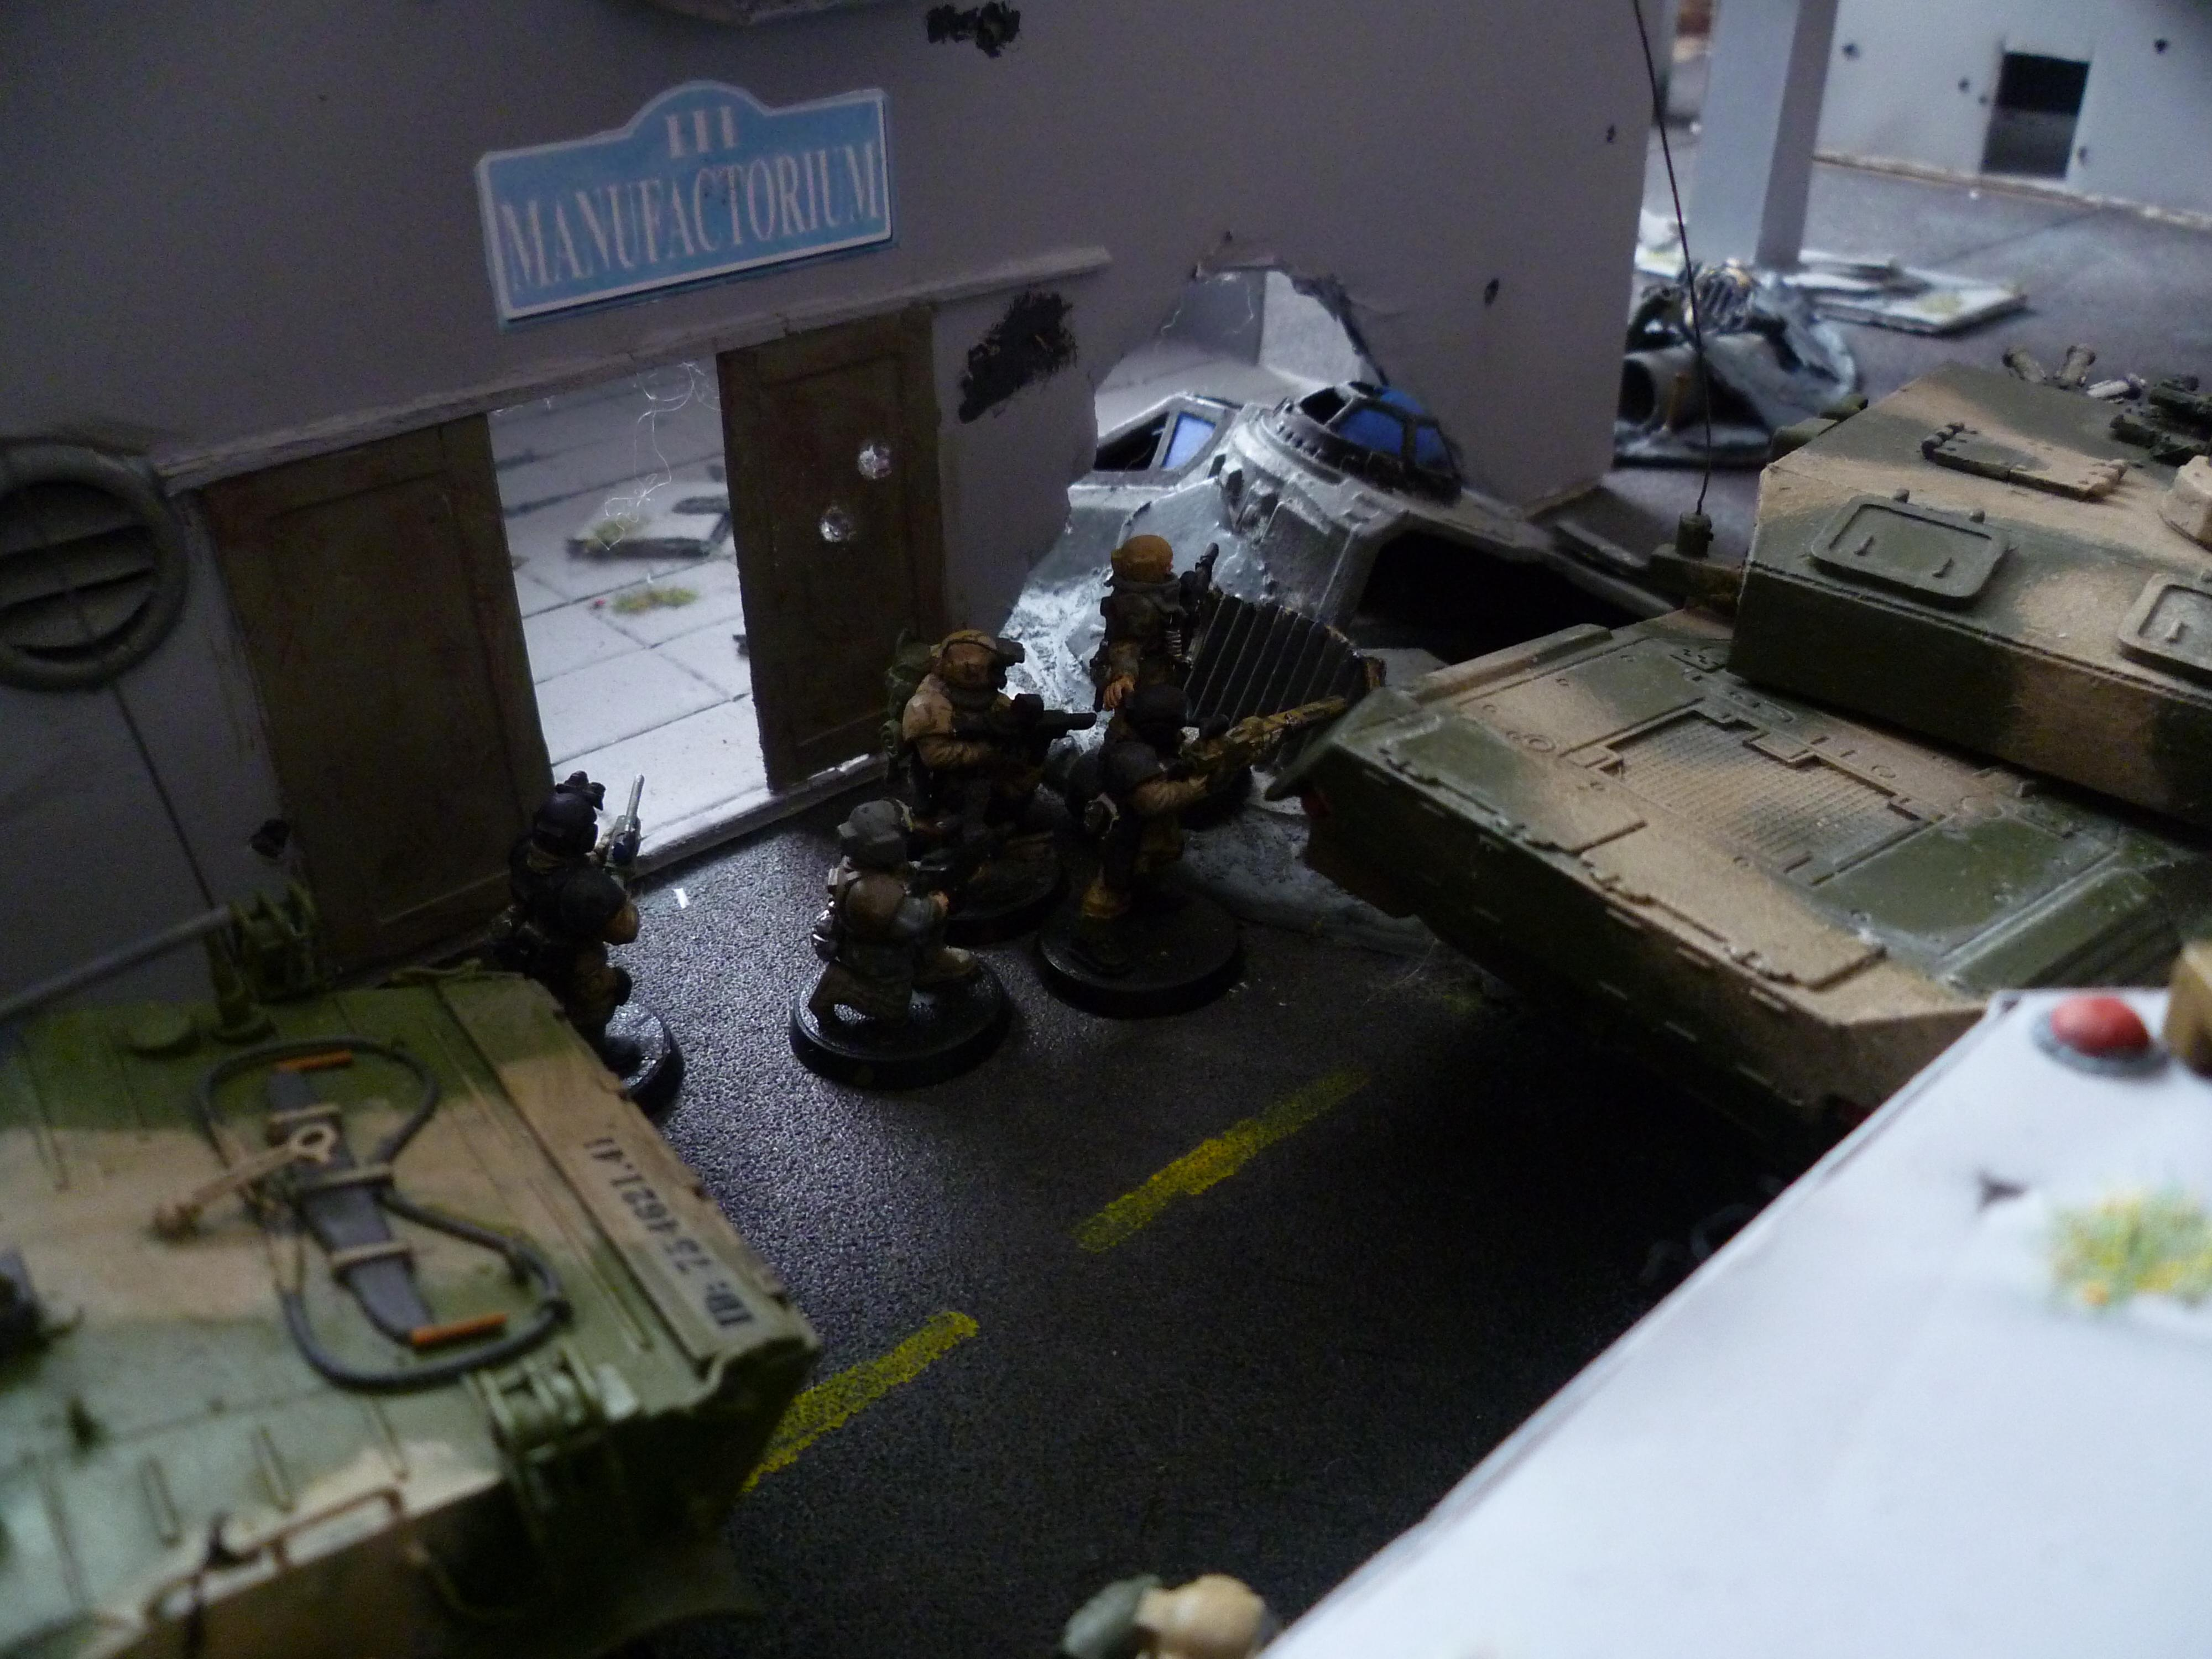 Aquila, Barricade, Buildings, Chimera, Cities Of Death, City, Dragon Teeth Tank Traps, Guardsmen, Hotel, Imperial, Imperial Guard, Imperium, Industrial City, Industry, Lander, Landing Pad, Ruined, Ruins, Snipers, Stalingrad, Street, Tank Traps